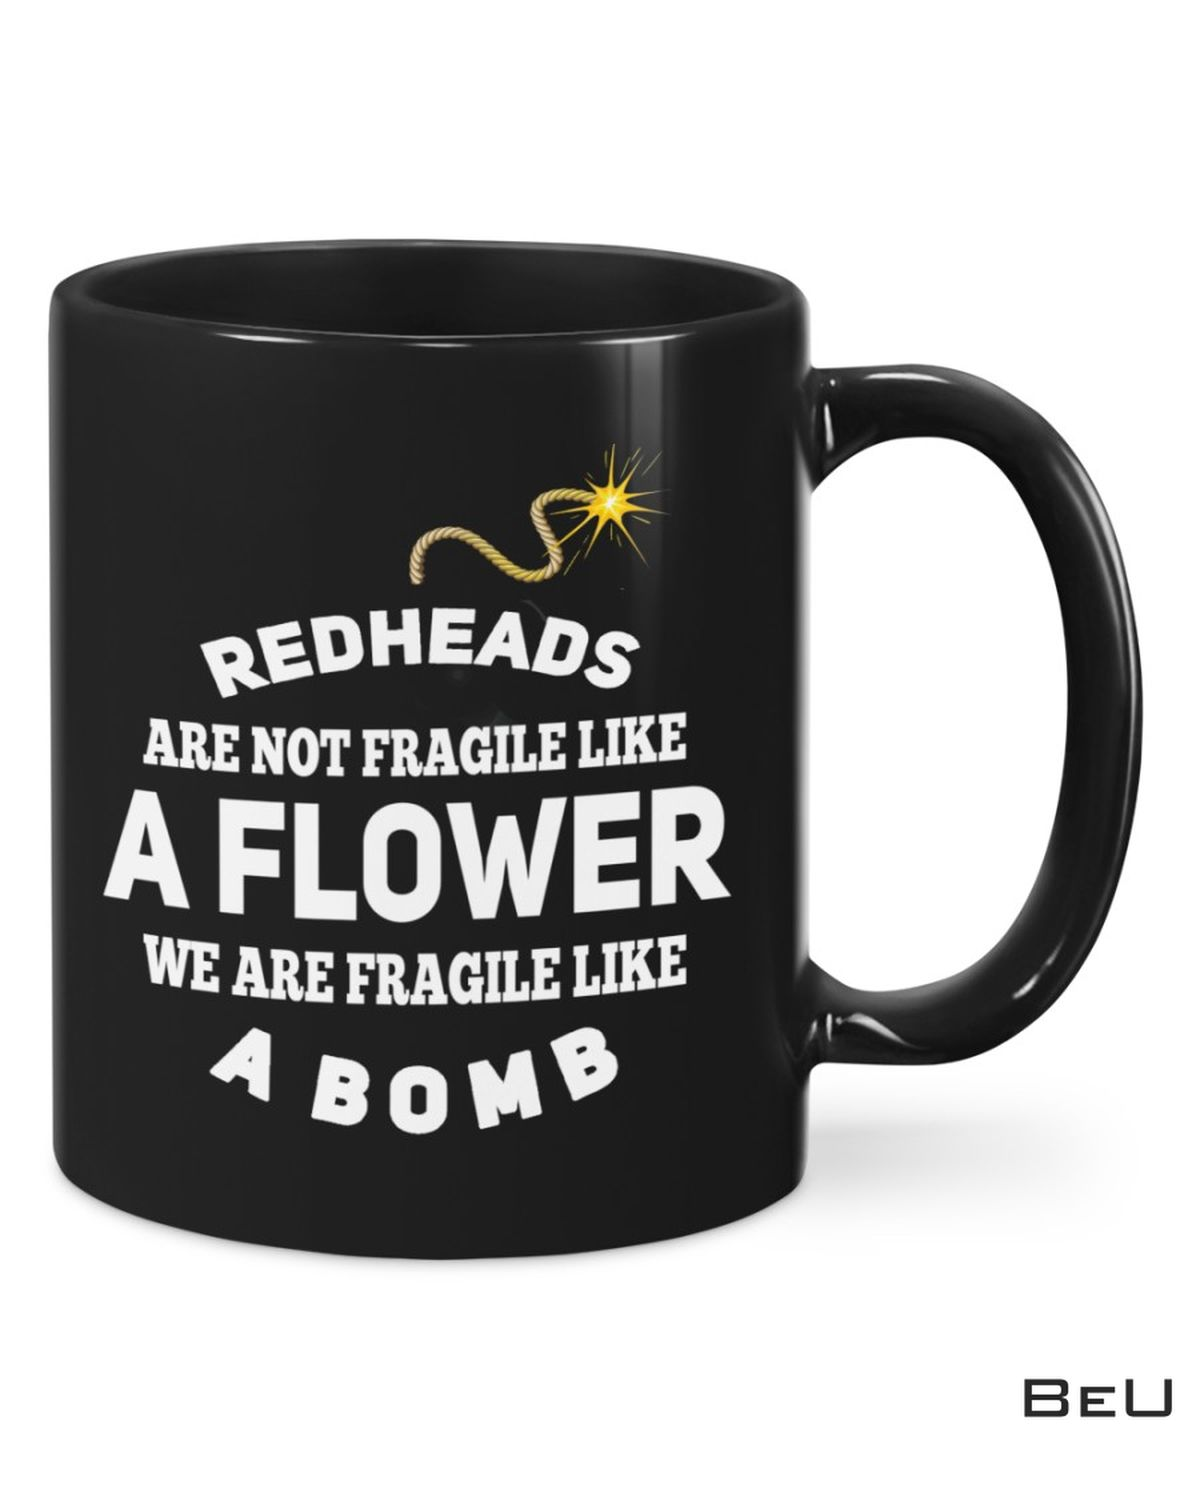 Redheads Are Not Fragile As A Flower We Are Fragi Mug